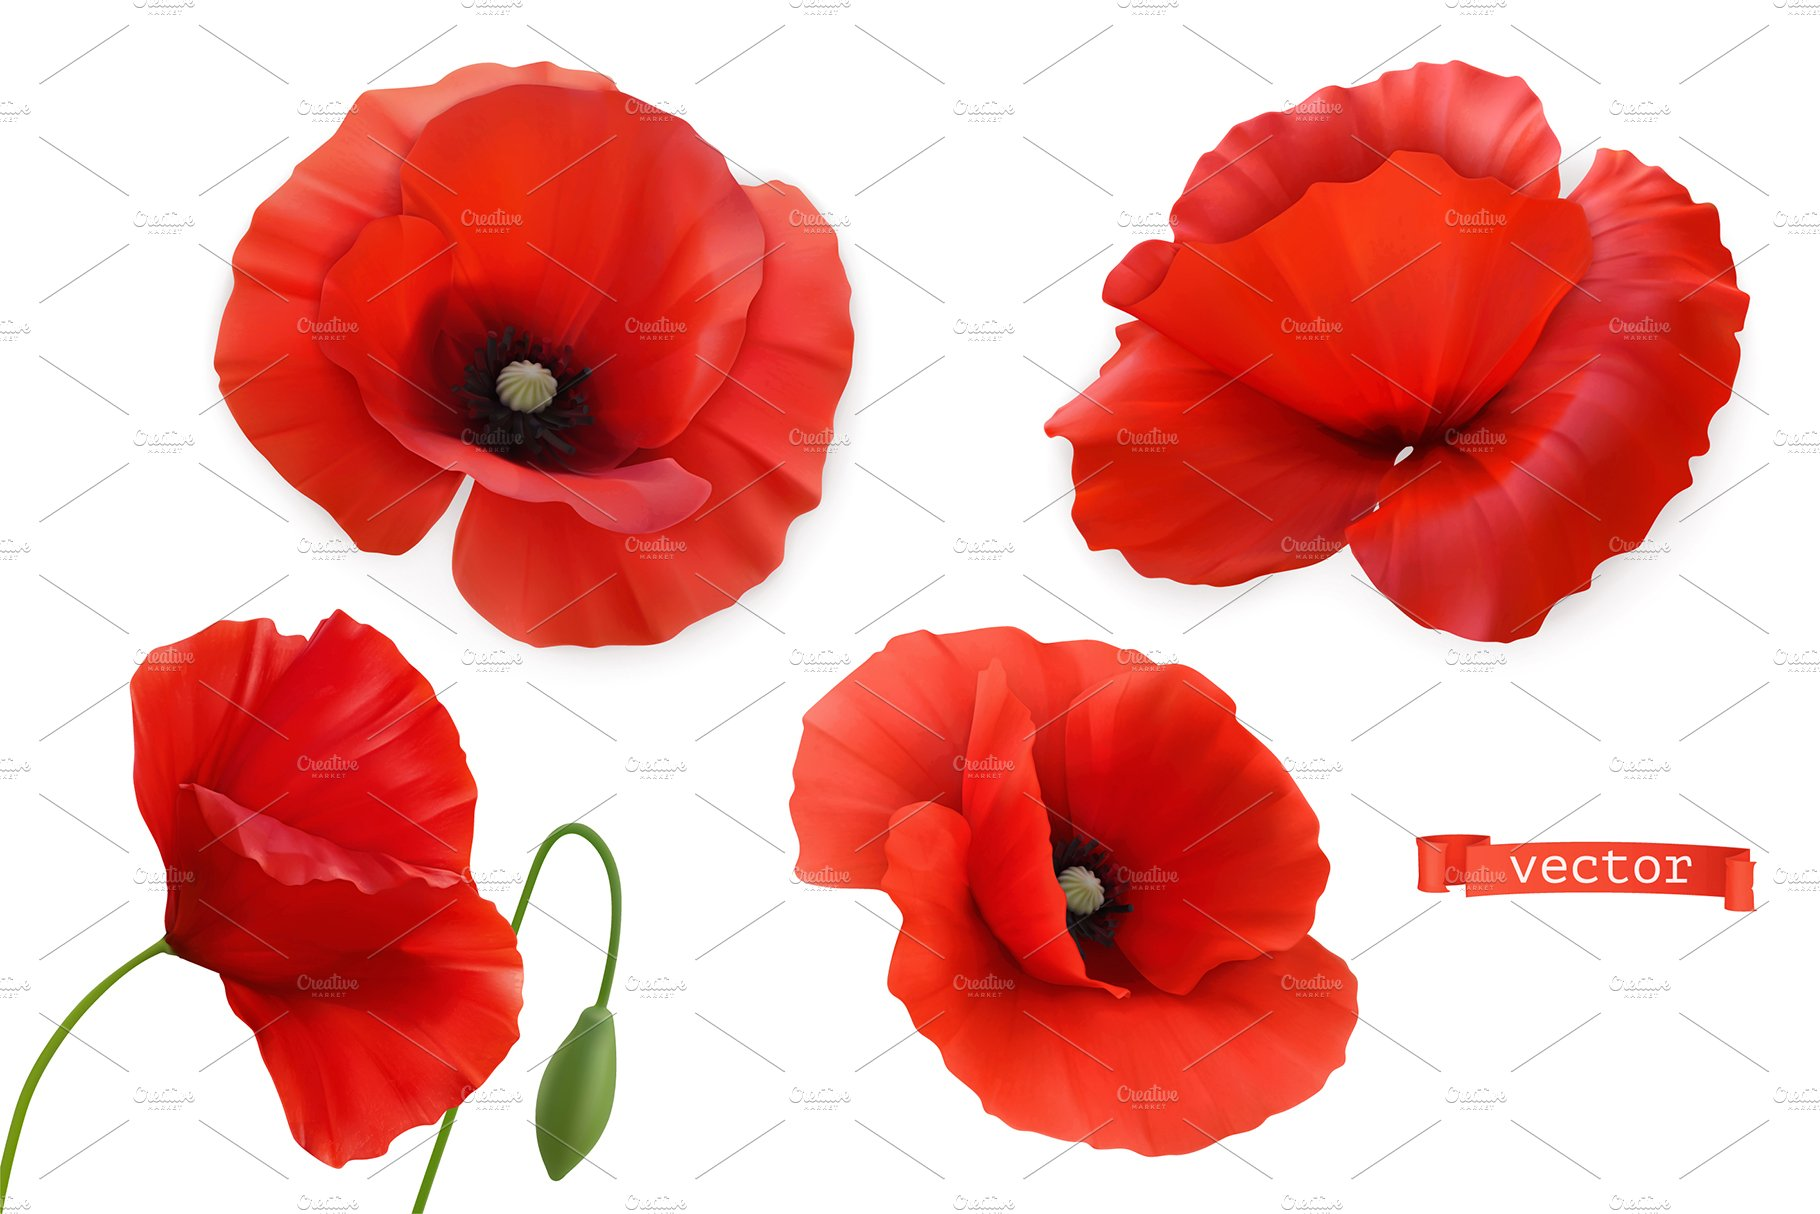 Red Poppies Flowers Poppy Day Custom Designed Icons Creative